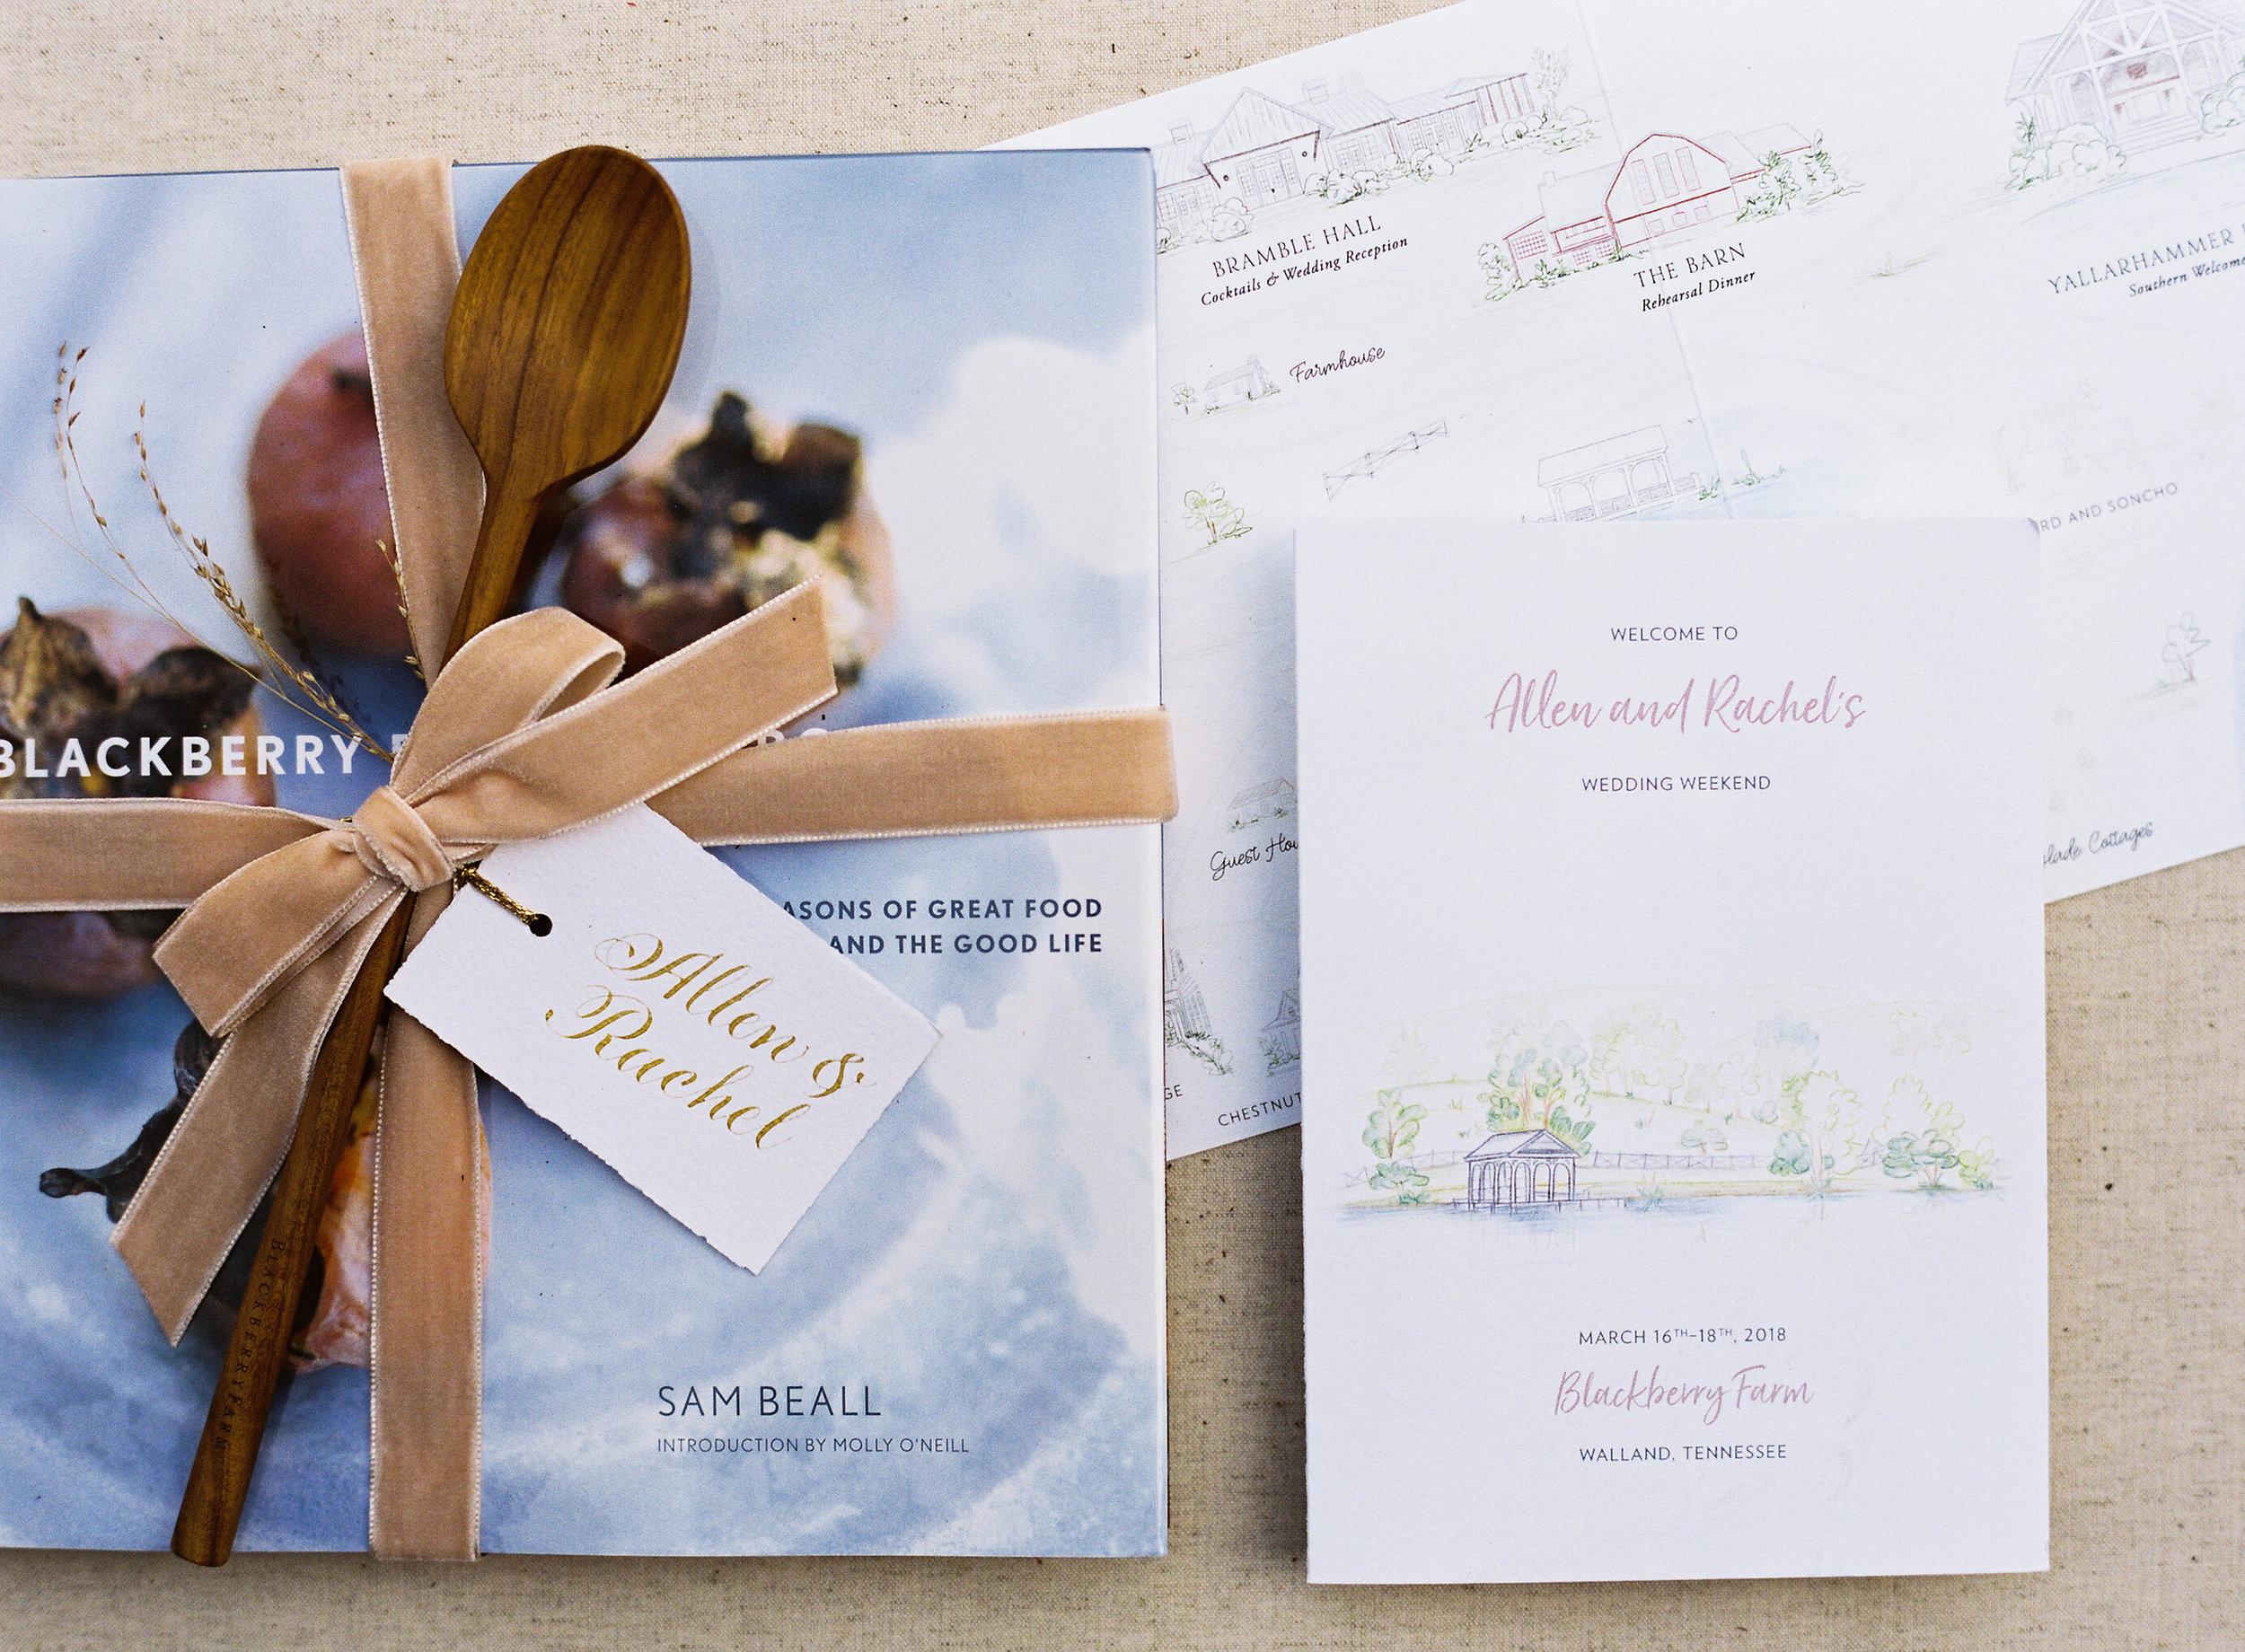 Welcome Gifts from Blackberry Farm with a custom venue map drawn by Chavelli www.chavelli.com